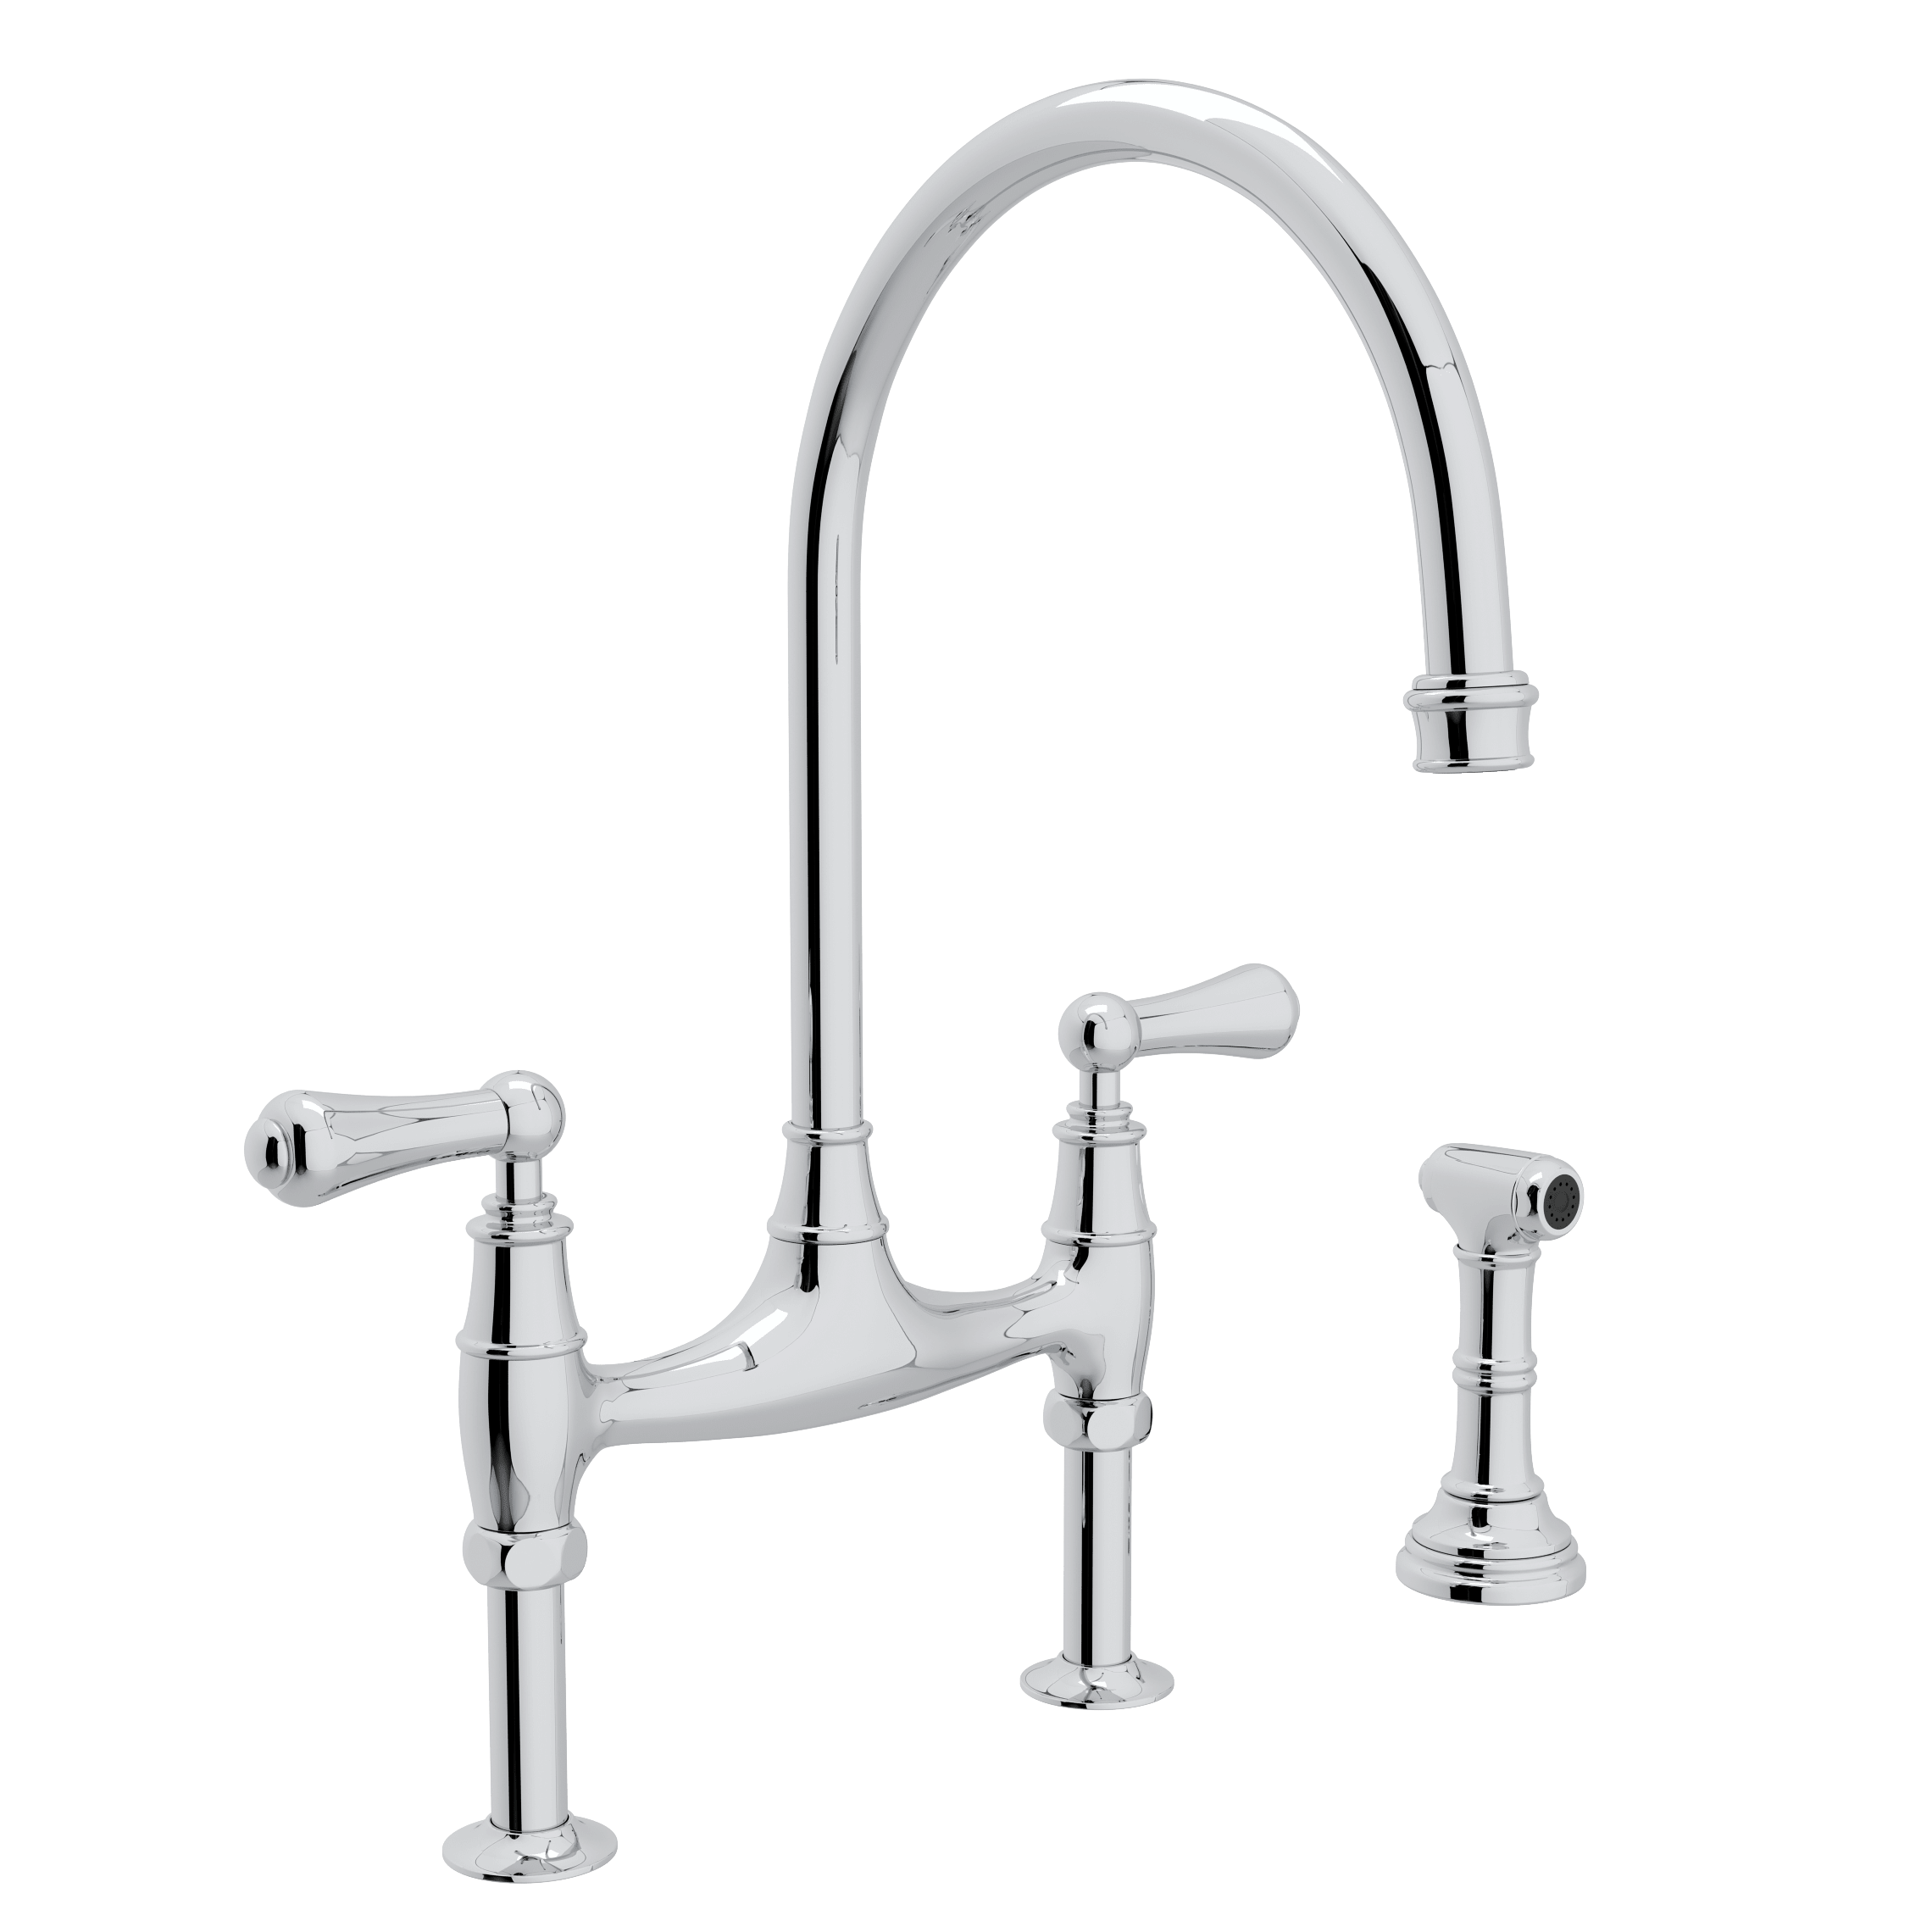 modern rohl faucets kitchen down water copper pull high handle end drinking kohler faucet moen outstanding fauc ideas for single